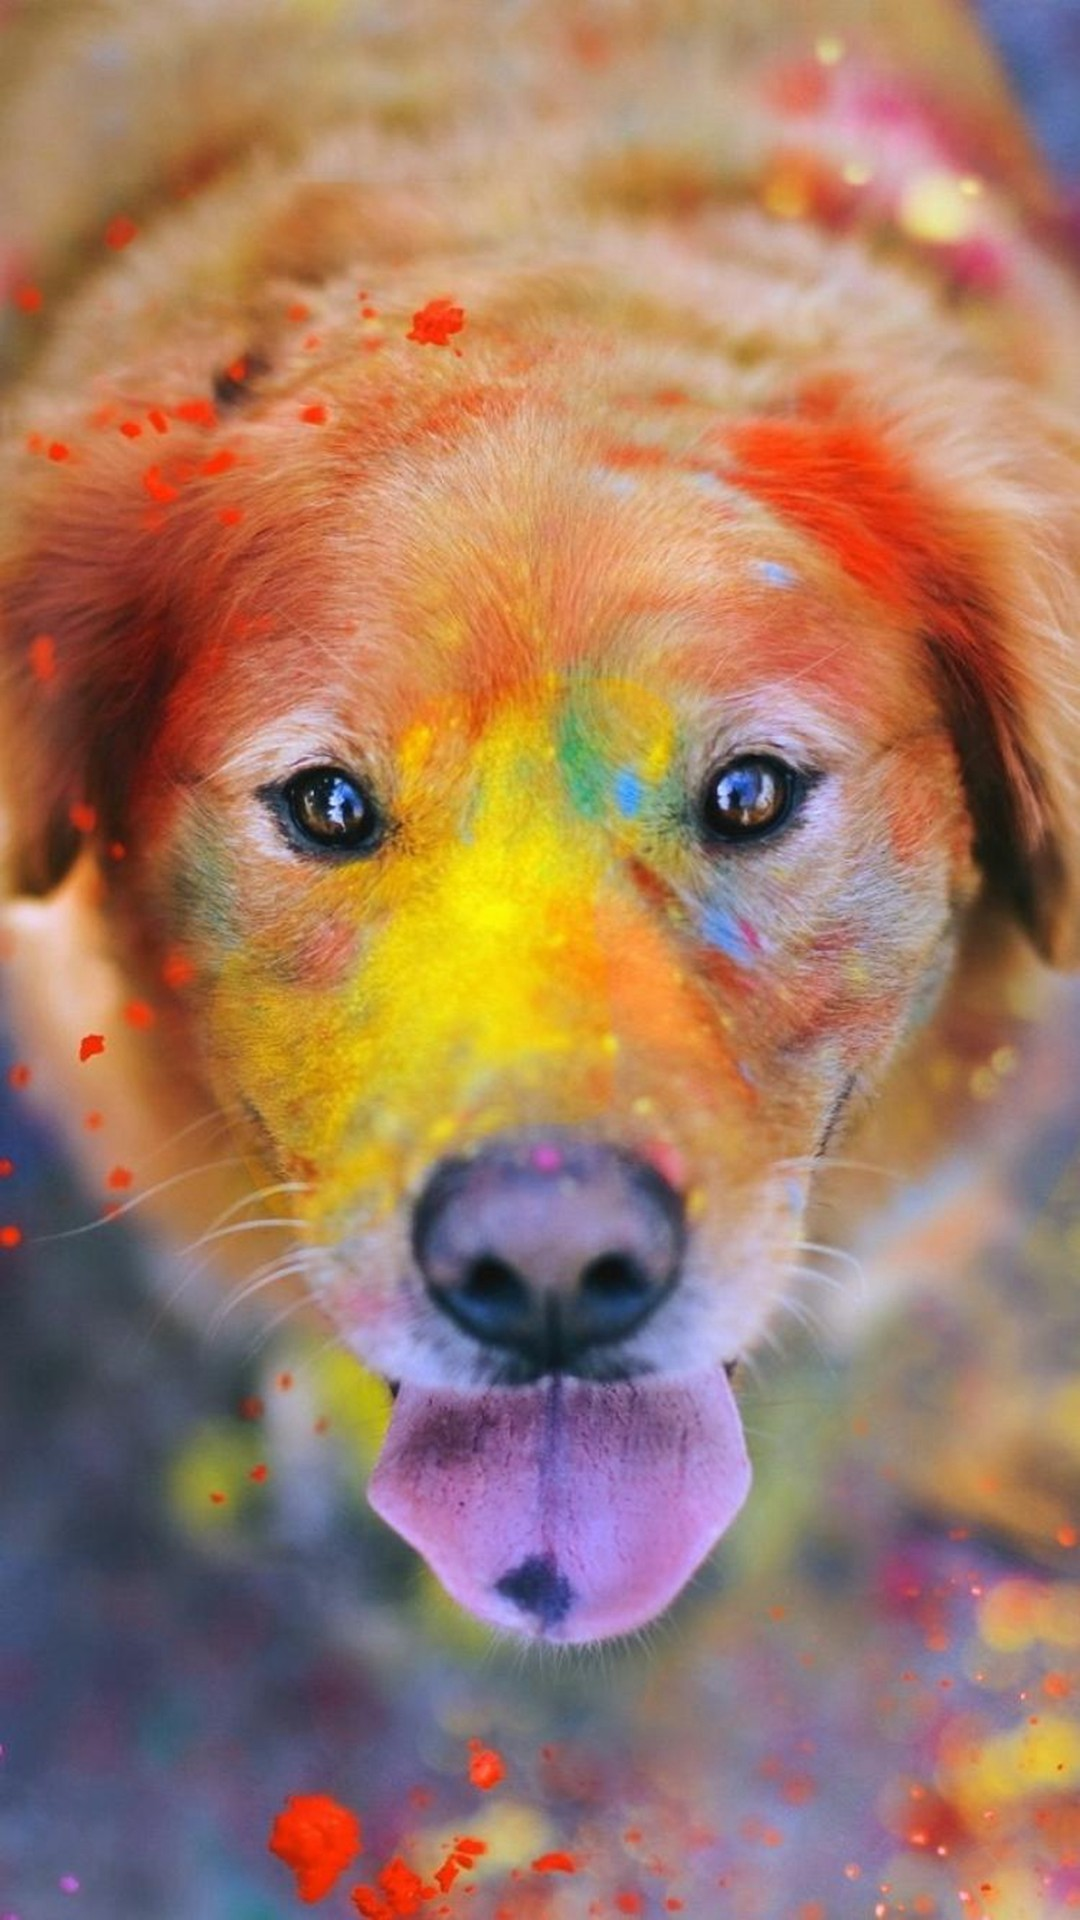 1080x1920 Colorful Paint Giant Dog Animal iPhone 6 wallpaper